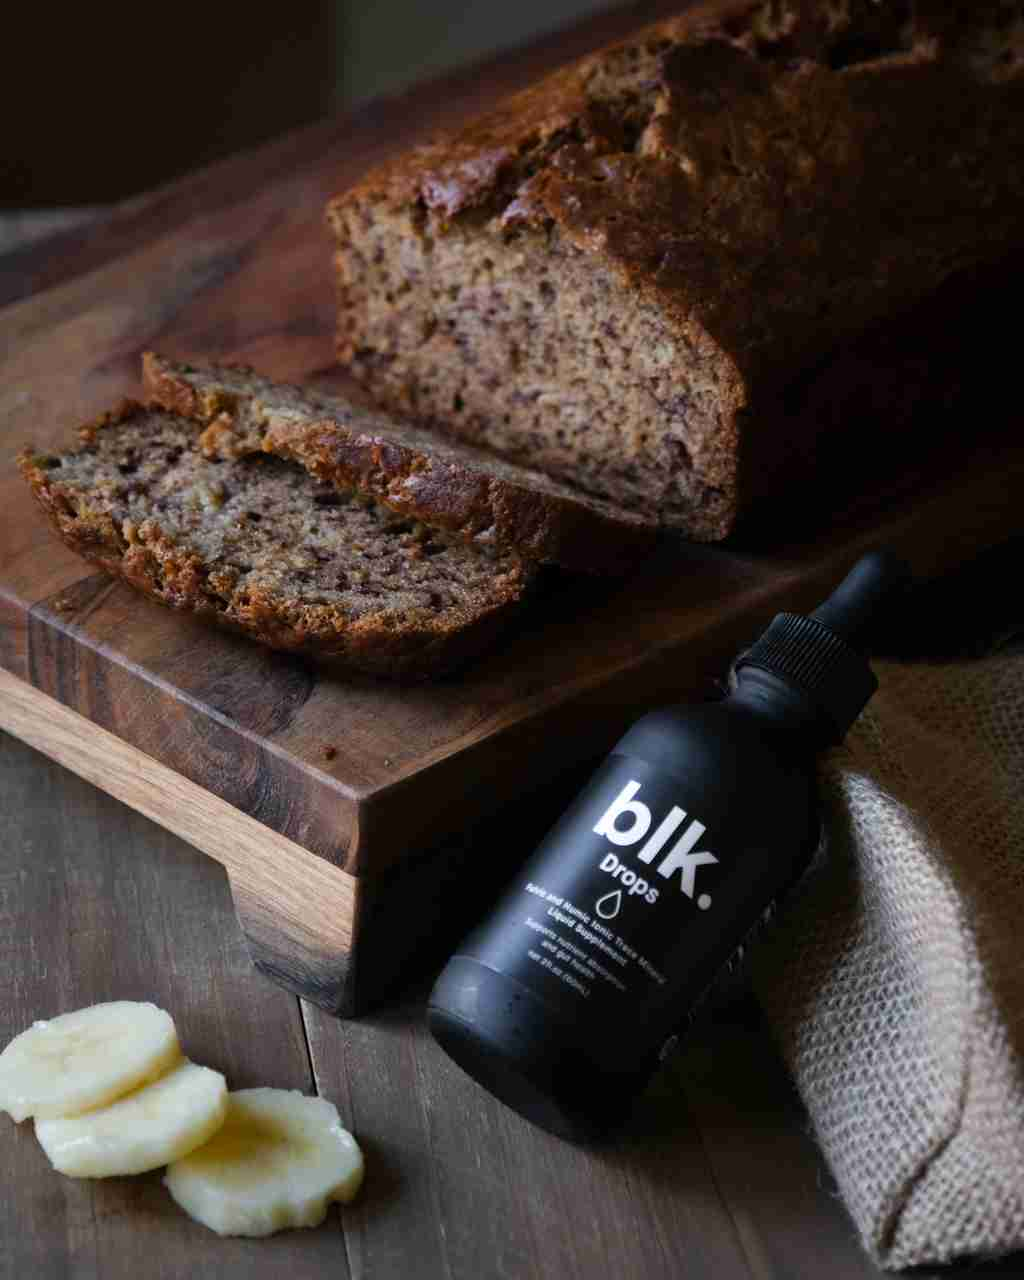 Festive Gingerbread Cookie Recipe made with blk. Drops